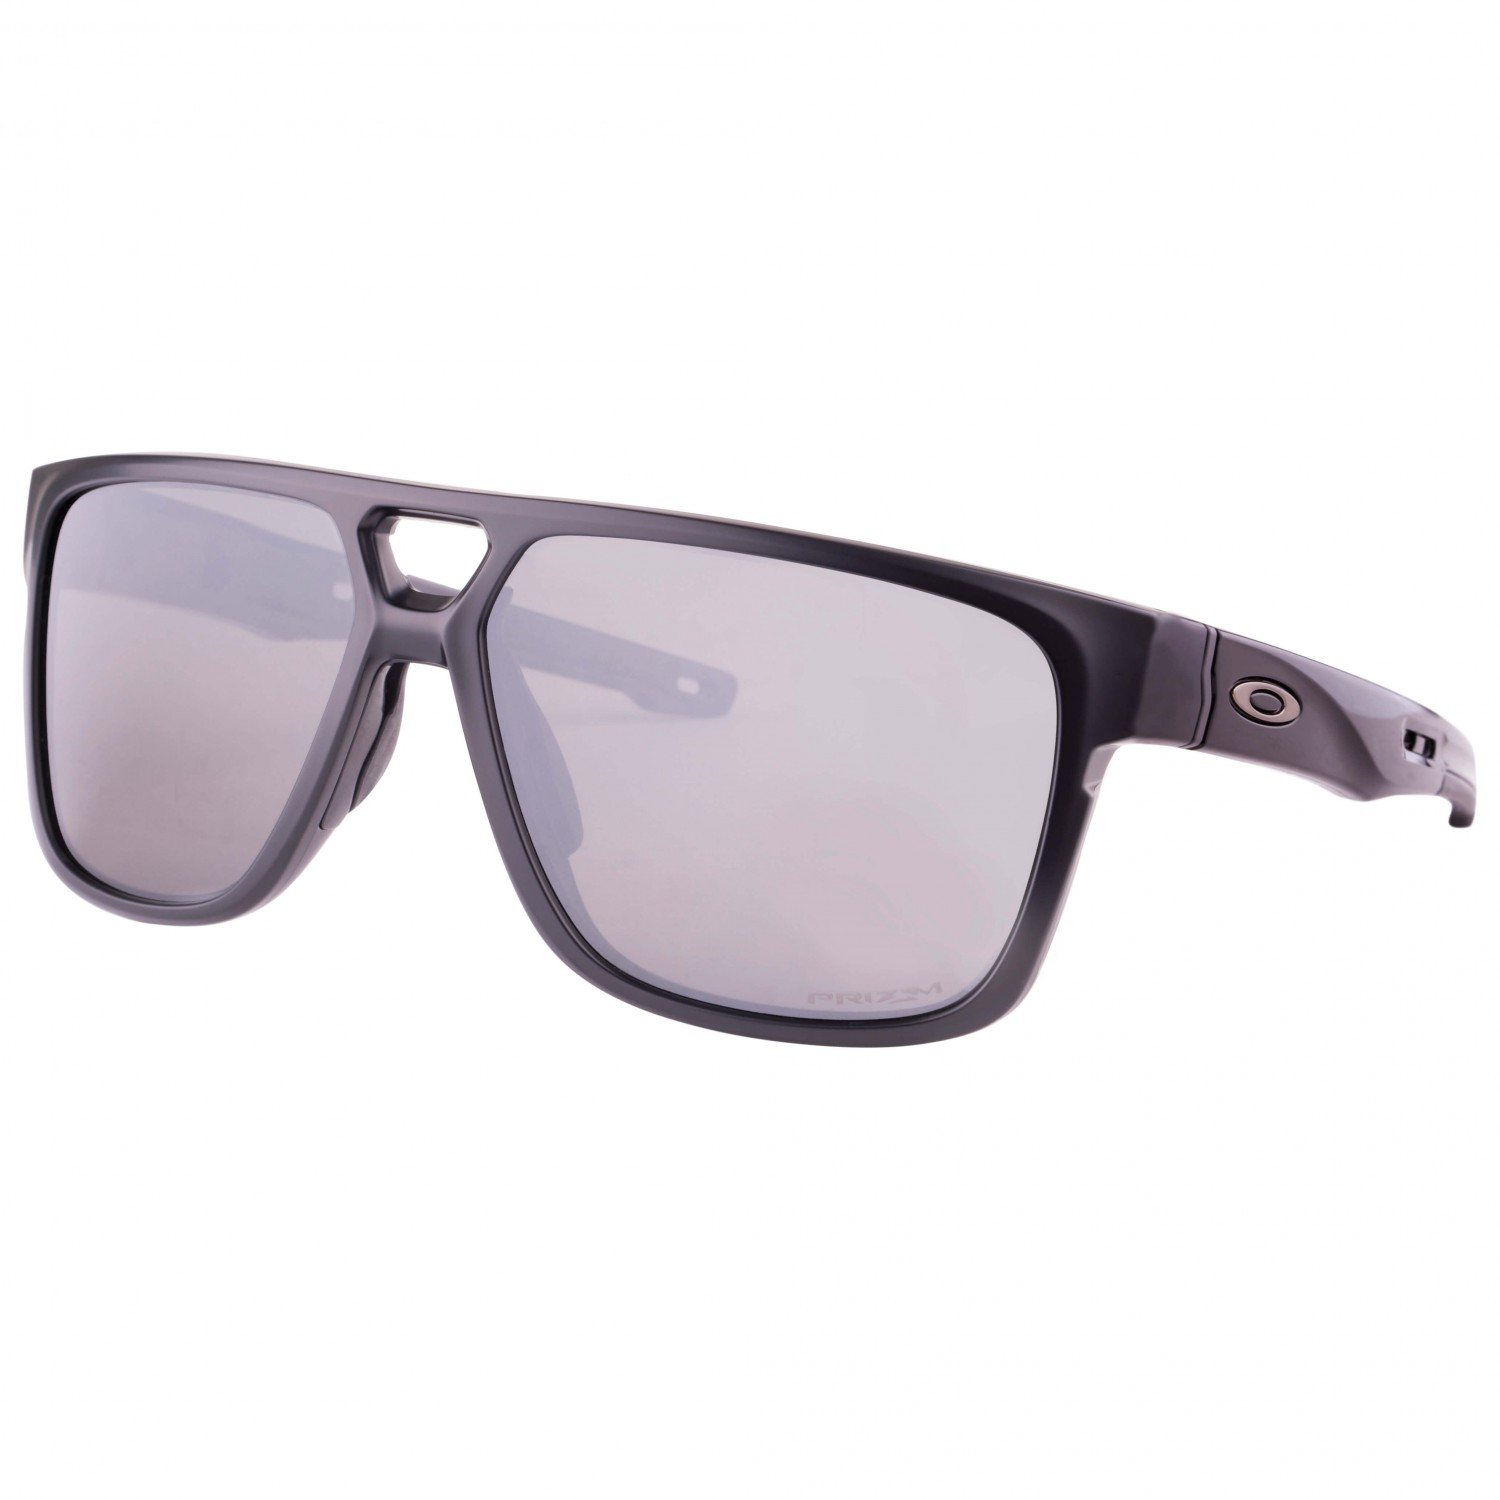 Da 3 Occhiali Oakley Acquista Crossrange Patch Vlt Sole 11 Cat tq0Bq